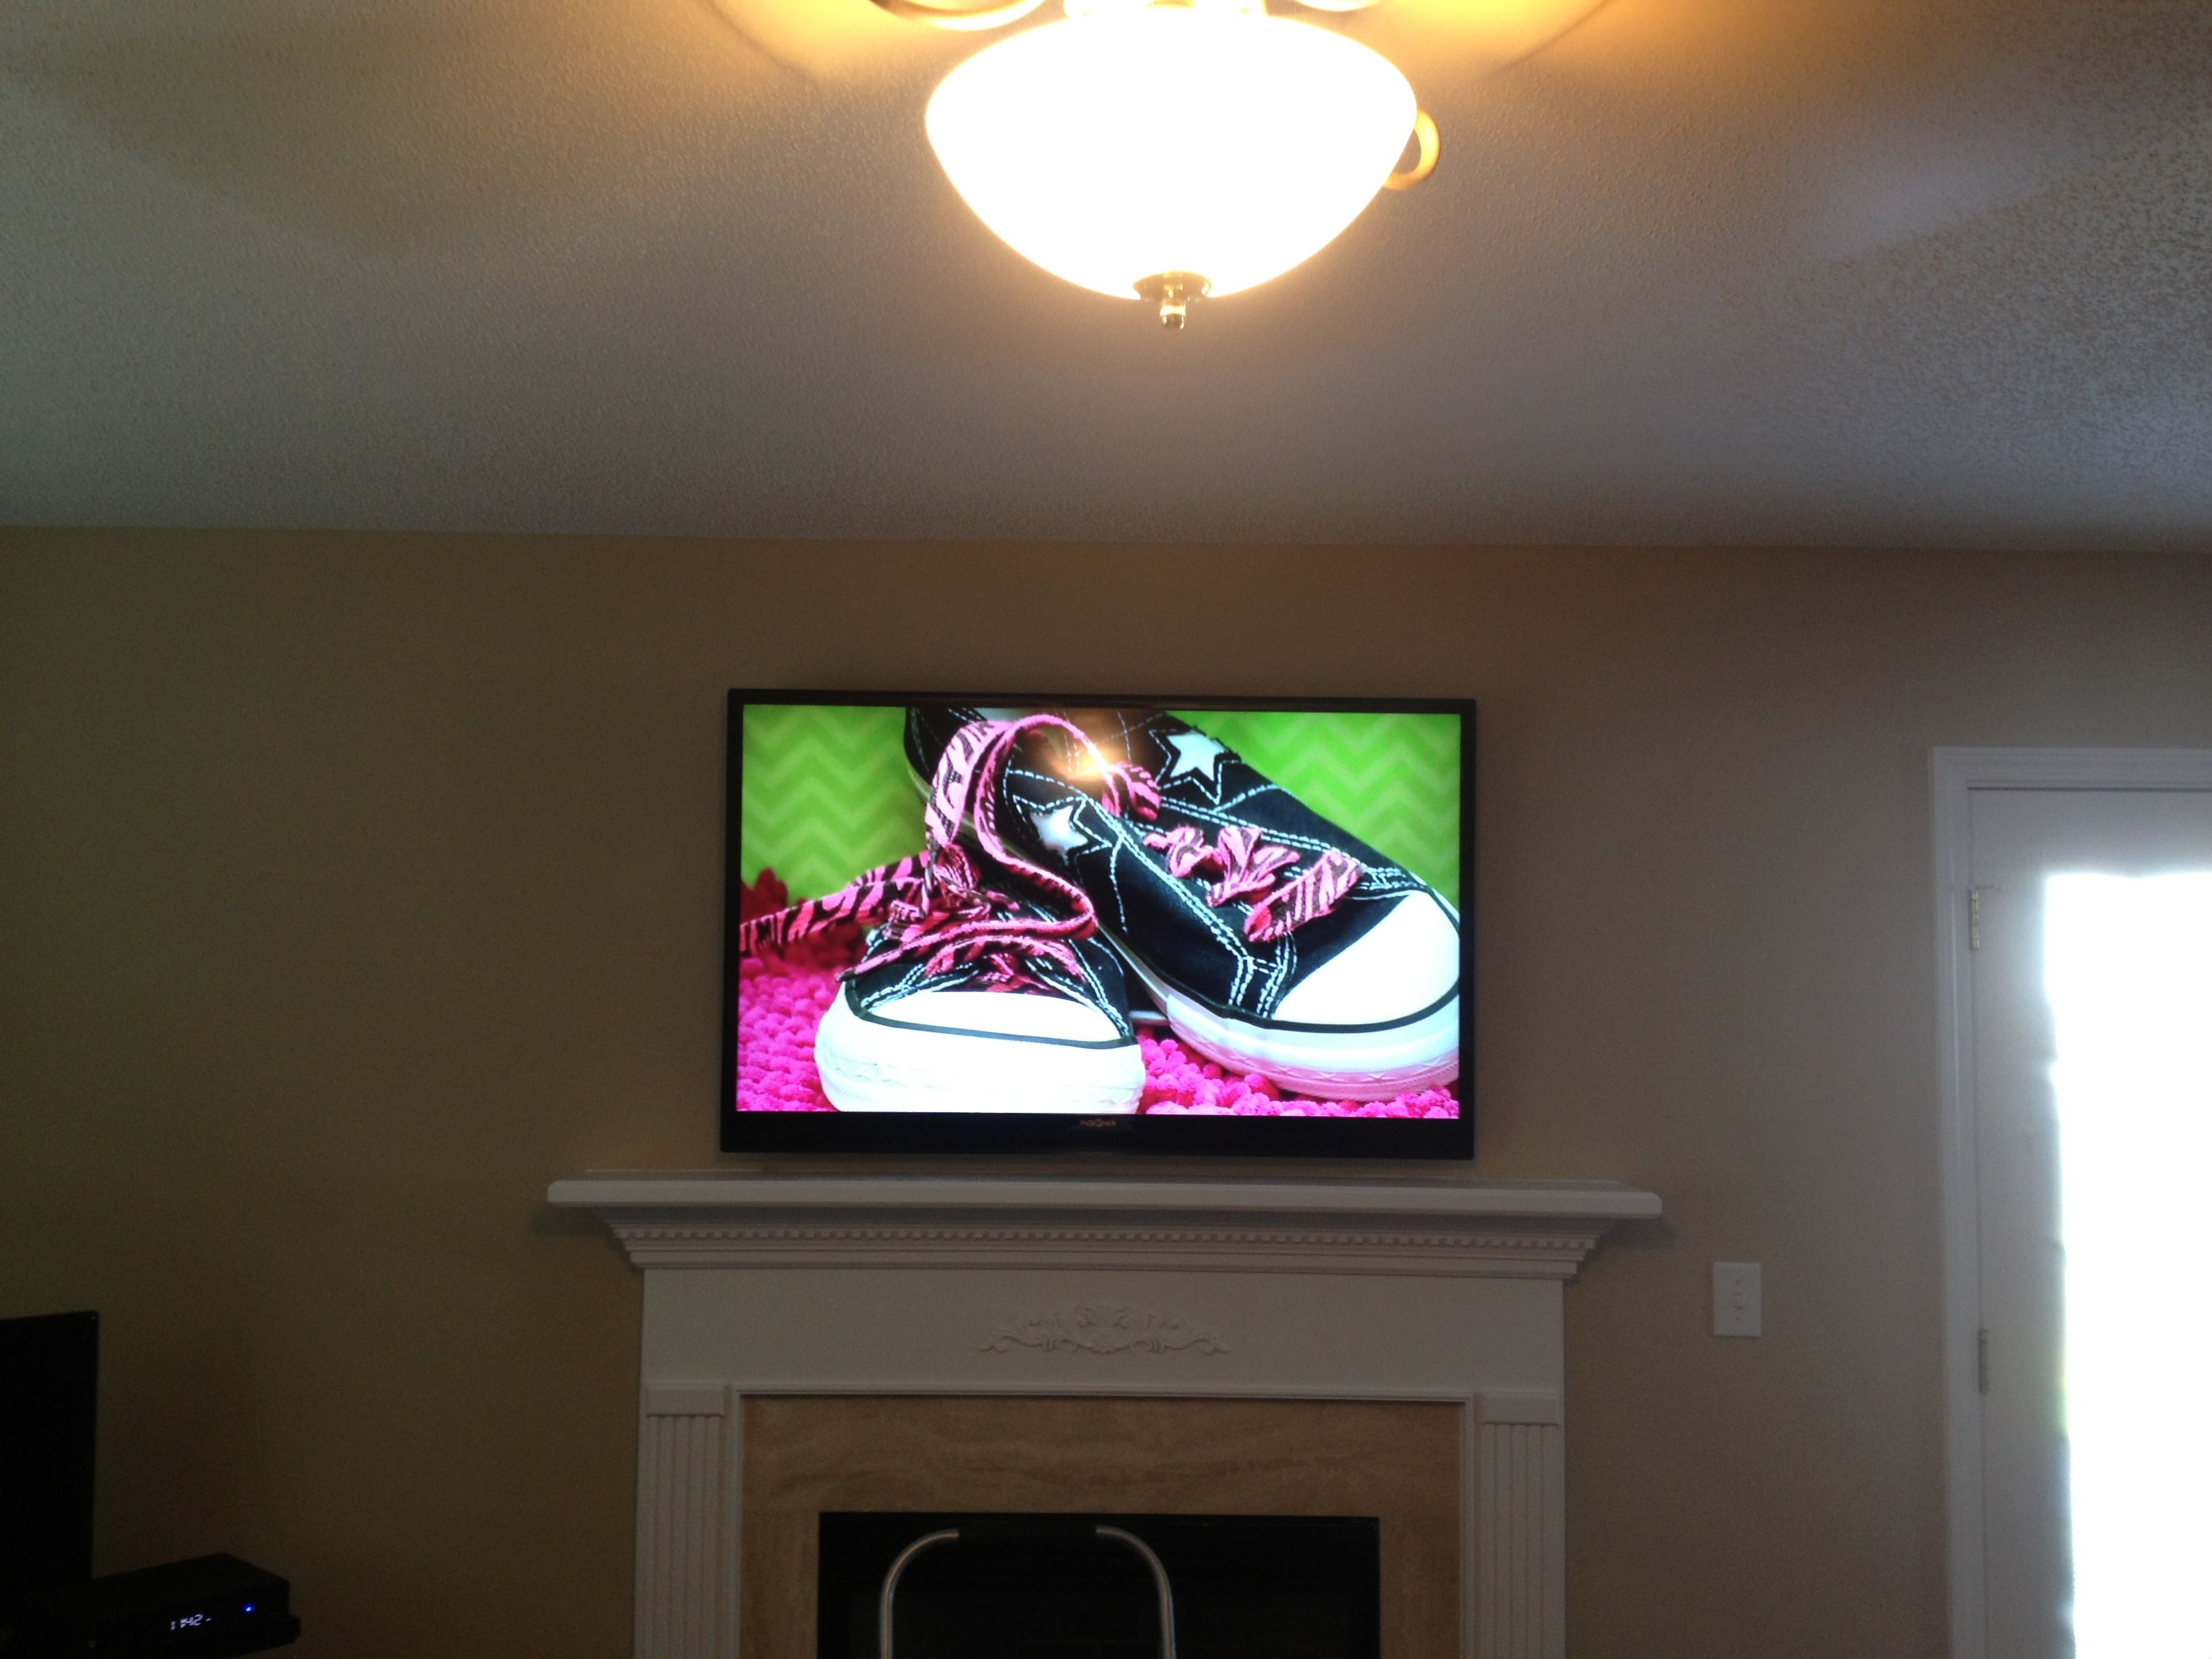 Charlotte Home Theater Installation Projector Surround Wiring Tv Systems Mounting Flatscreen